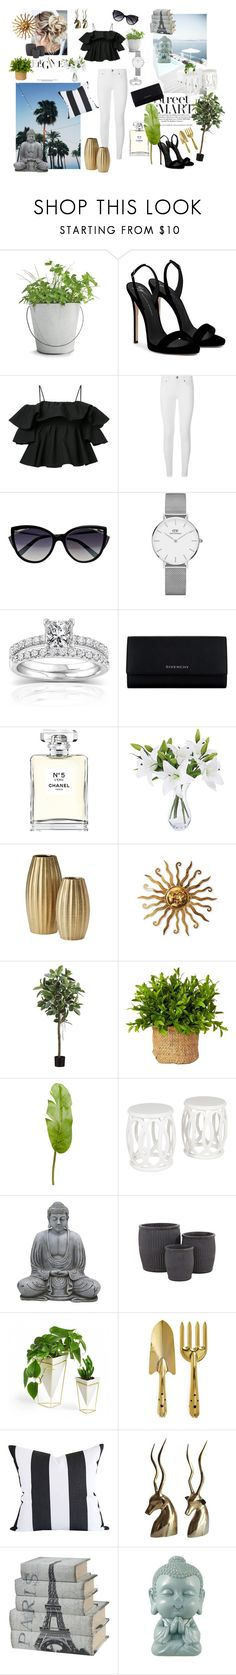 """Untitled #252"" by linneaha ❤ liked on Polyvore featuring Potting Shed Creations, Giuseppe Zanotti, MSGM, Burberry, La Perla, Daniel Wellington, Annello, Givenchy, Chanel and Pier 1 Imports"